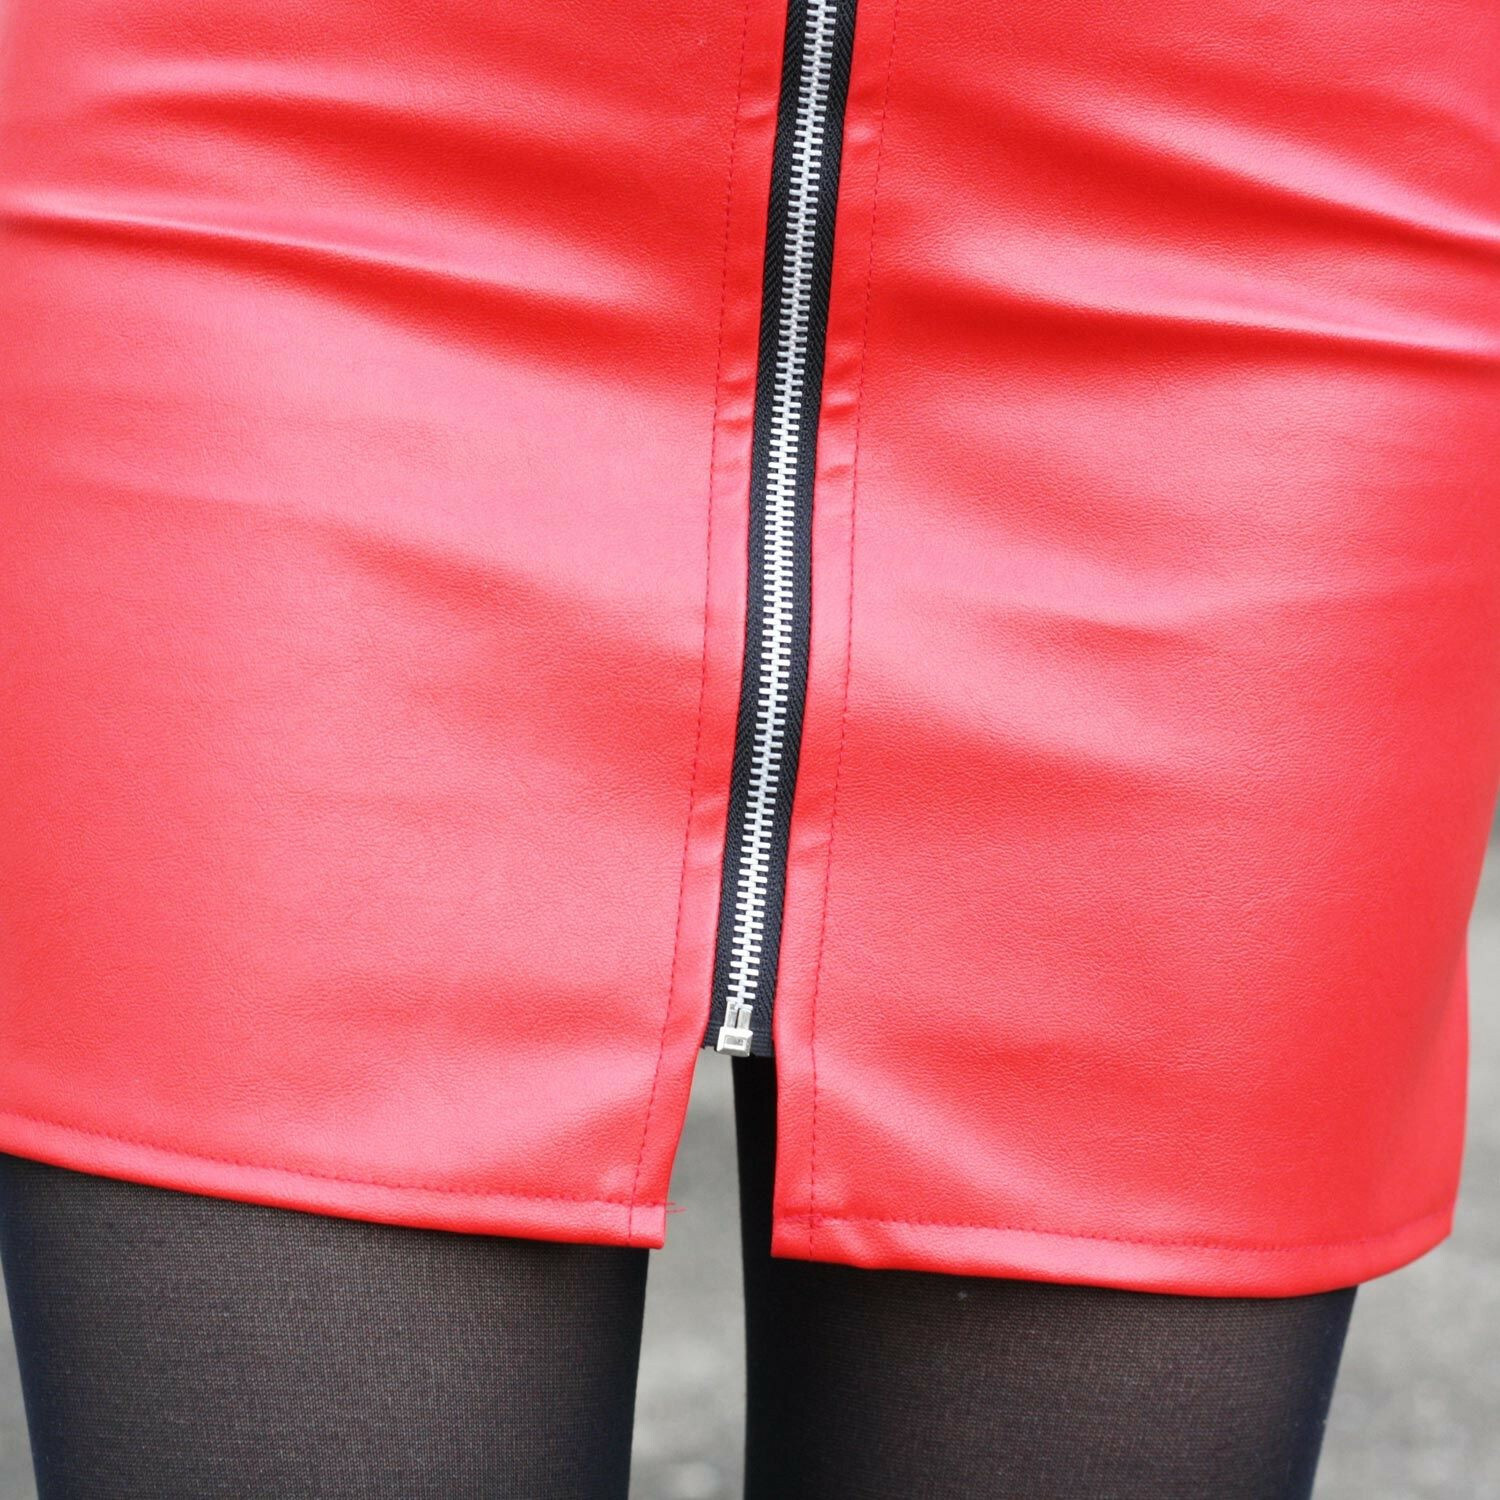 RED ZIPPED UP SKIRT